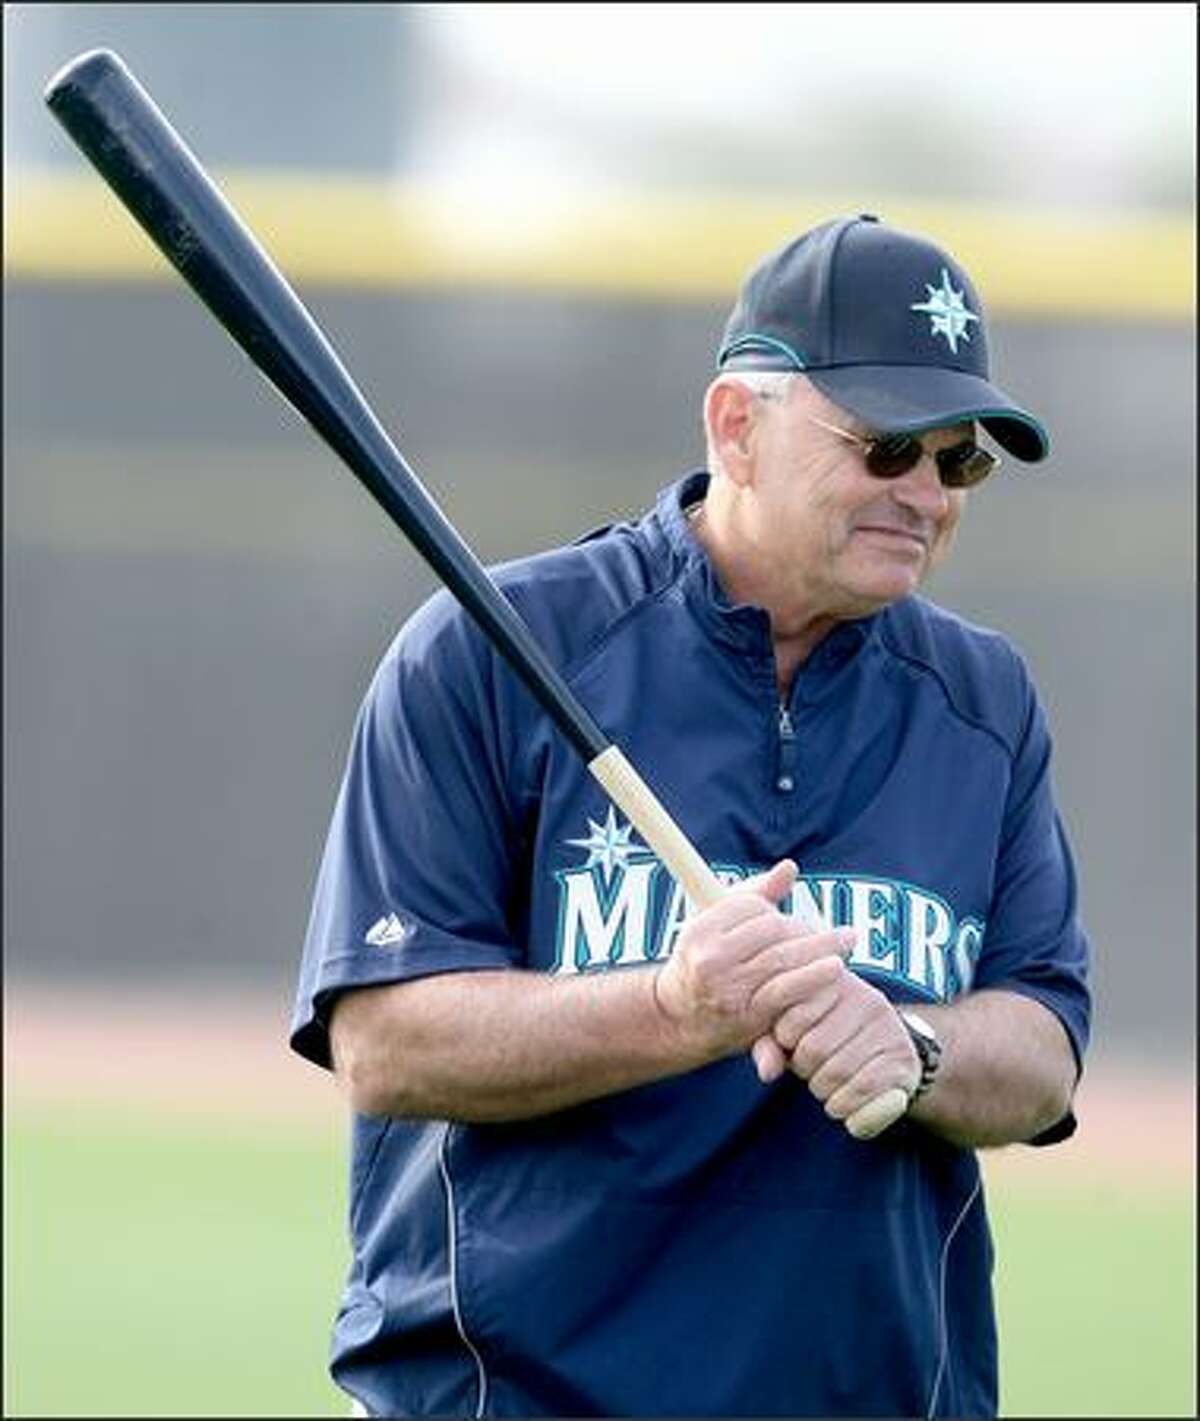 Mariners' manager John McLaren carries around a big stick at the first full squad workout of the Seattle Mariners at the Mariners training facility in Peoria, Ariz. on Wedday February 20, 2008.